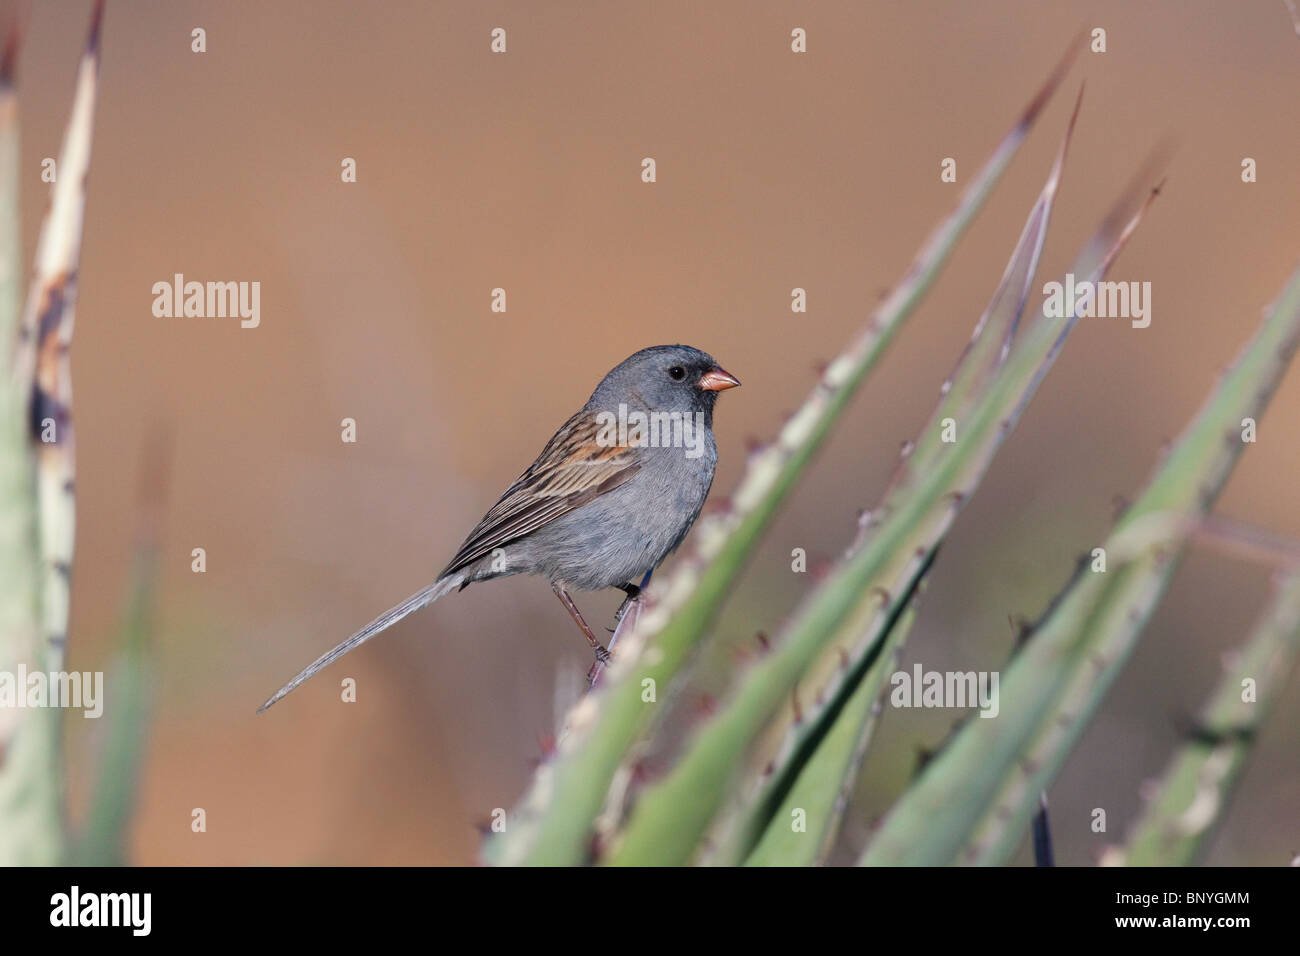 Black-chinned Sparrow - Stock Image